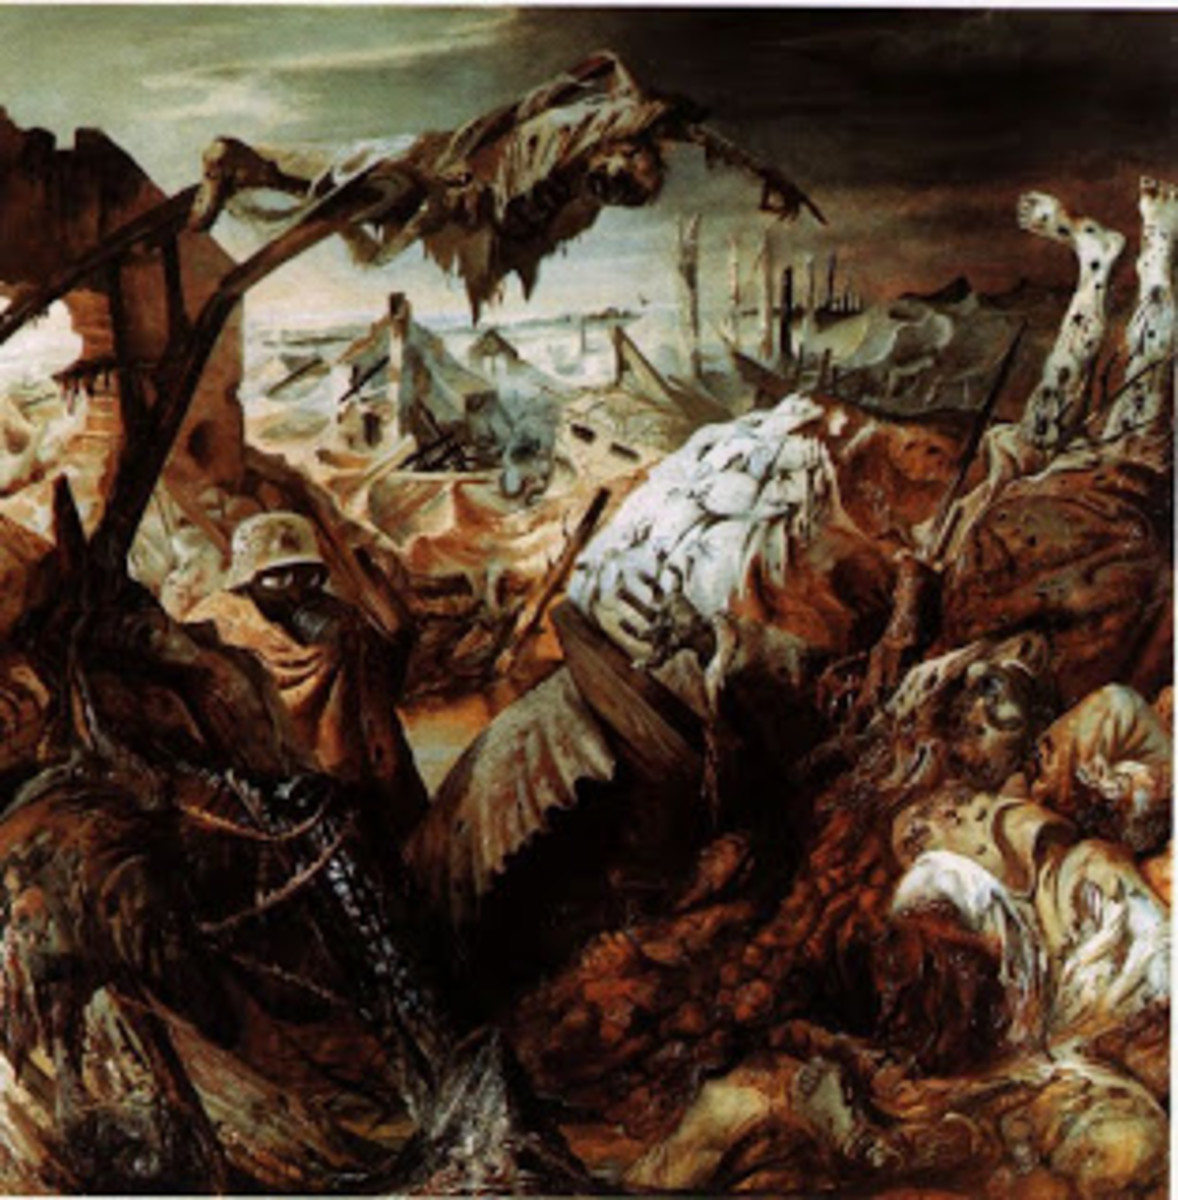 """Trench Warfare"" From Otto Dix, 1932 - ""I buried my face into the mud of the crater, waiting for the onslaught to disperse, or for the sergeant's whistle for retreat."""